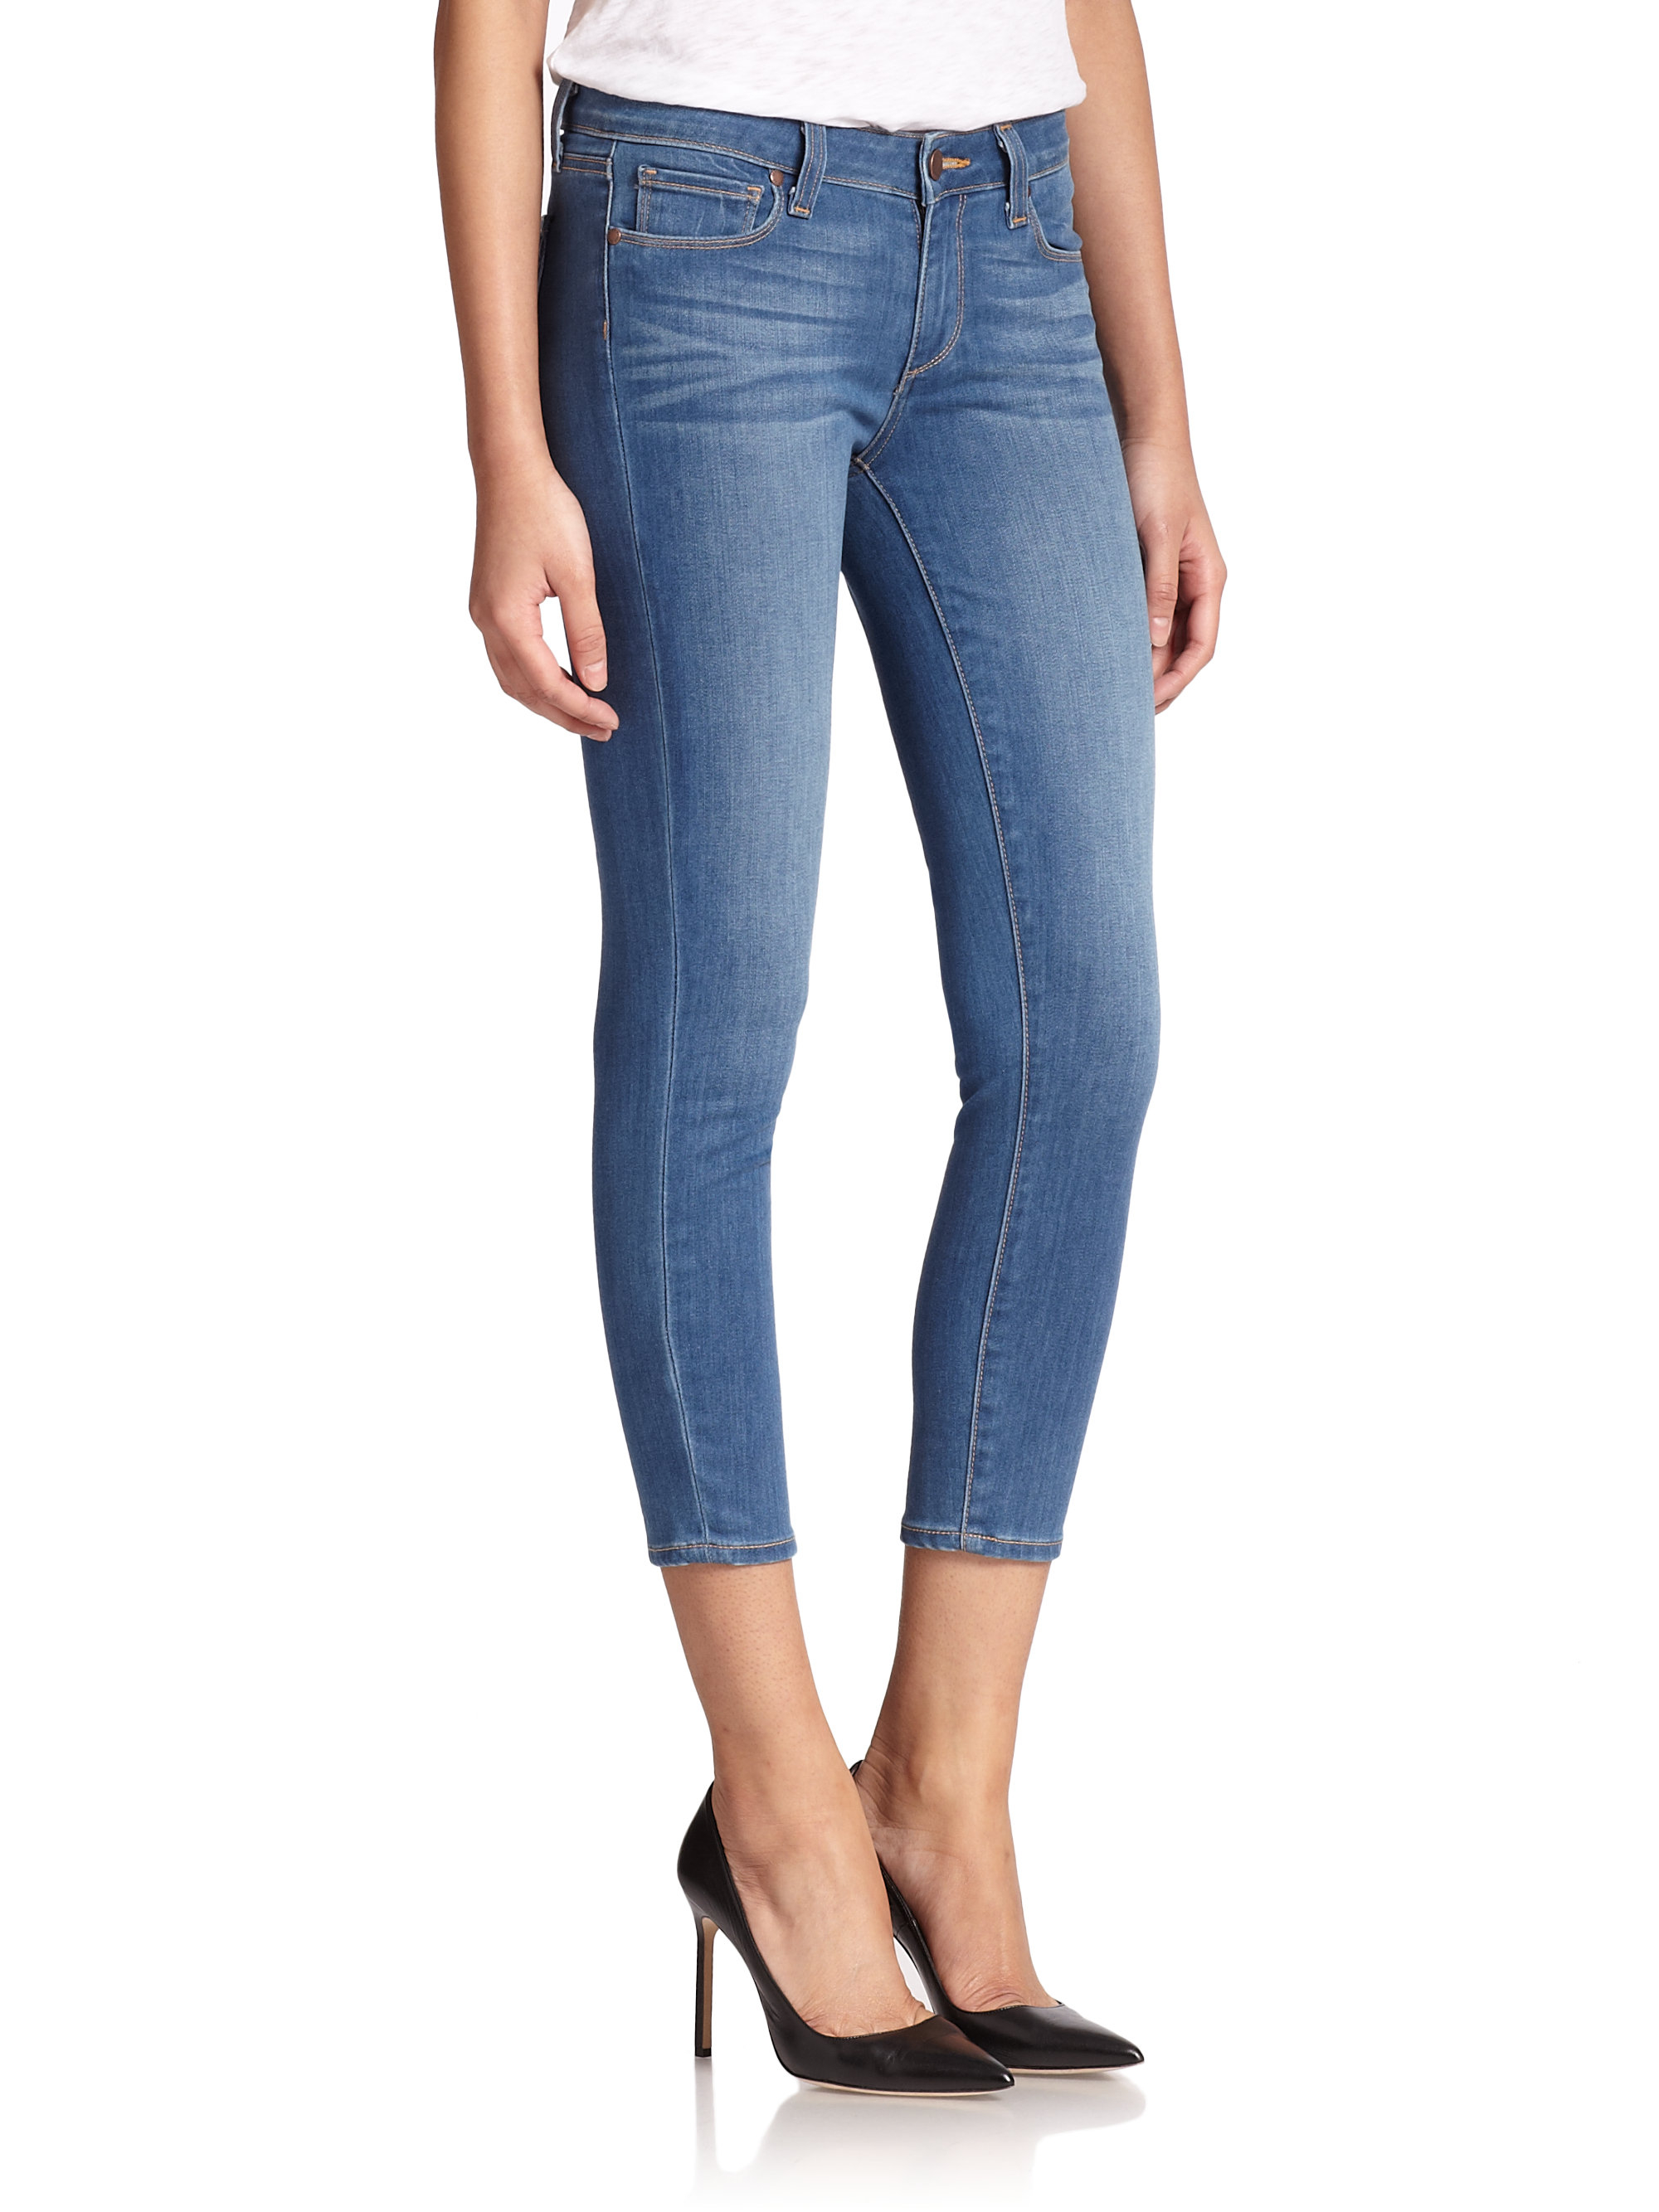 The cropped jean trend is here to stay and JustFab has you covered with an amazing roster of cropped denim styles. All JustFab members who make a transaction utilizing Masterpass checkout button option on gemeku.cf during the Promotion Period are eligible to receive a Loyalty Points Bonus.